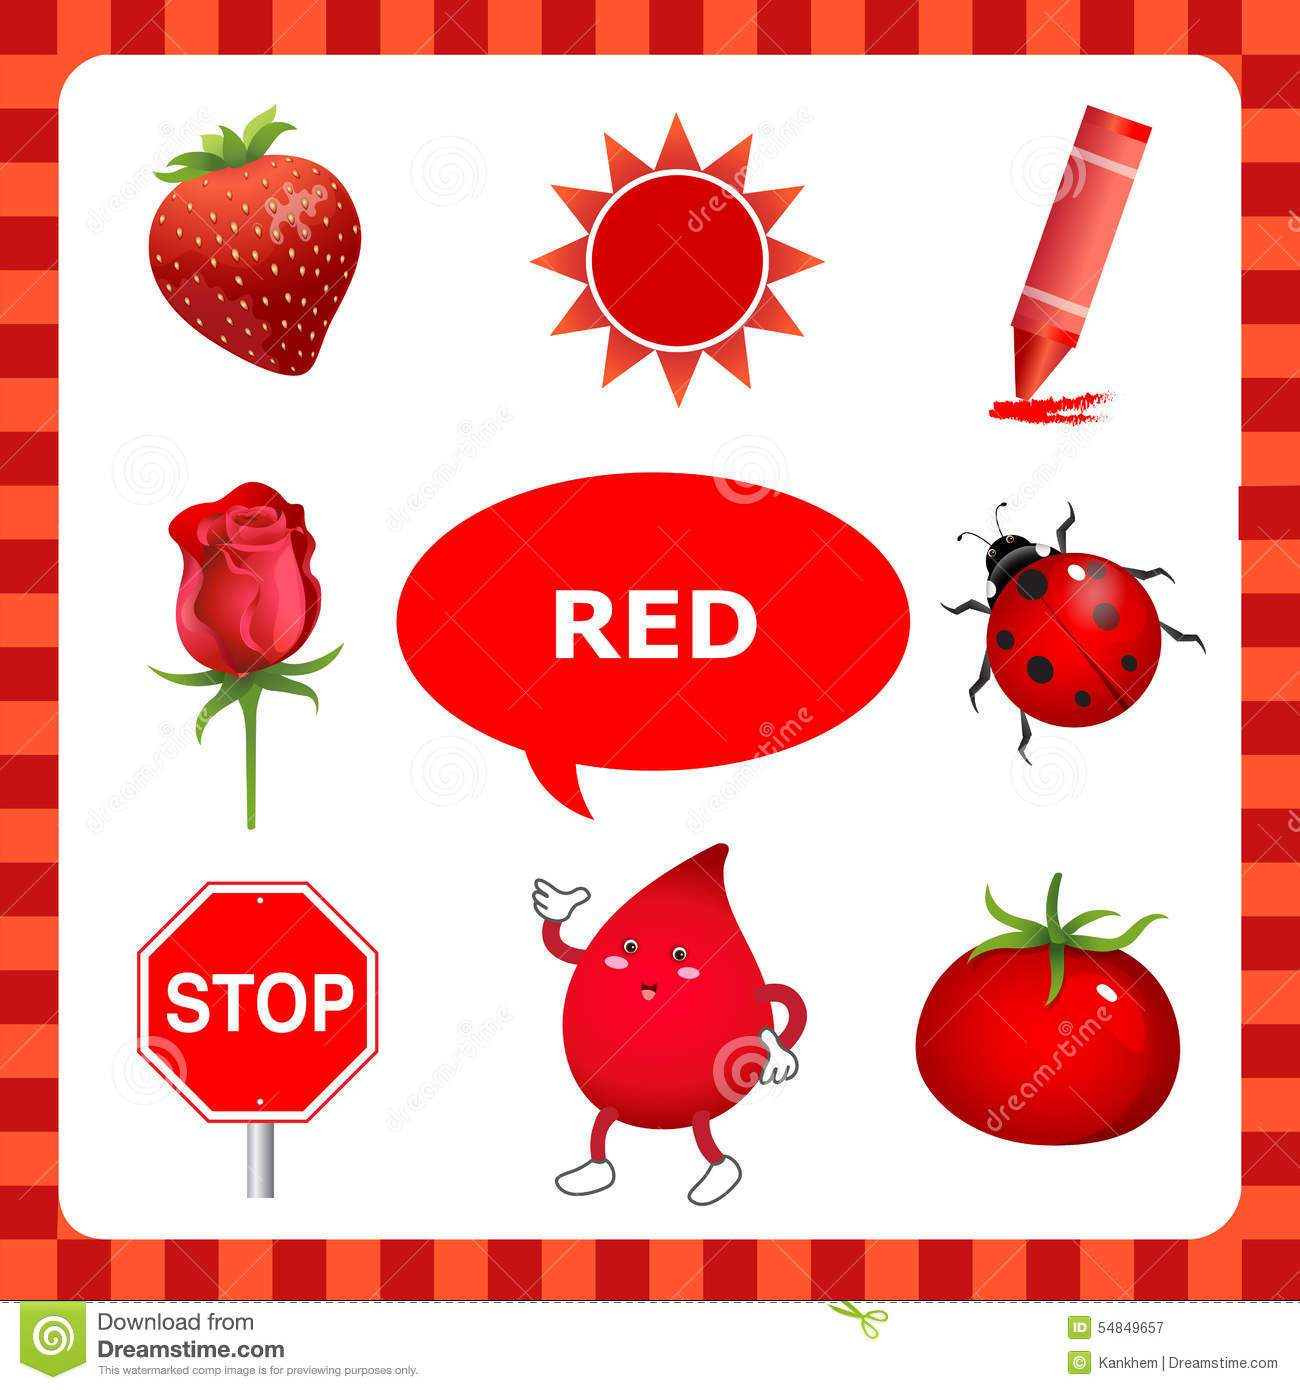 Red colour objects clipart 1 » Clipart Portal.